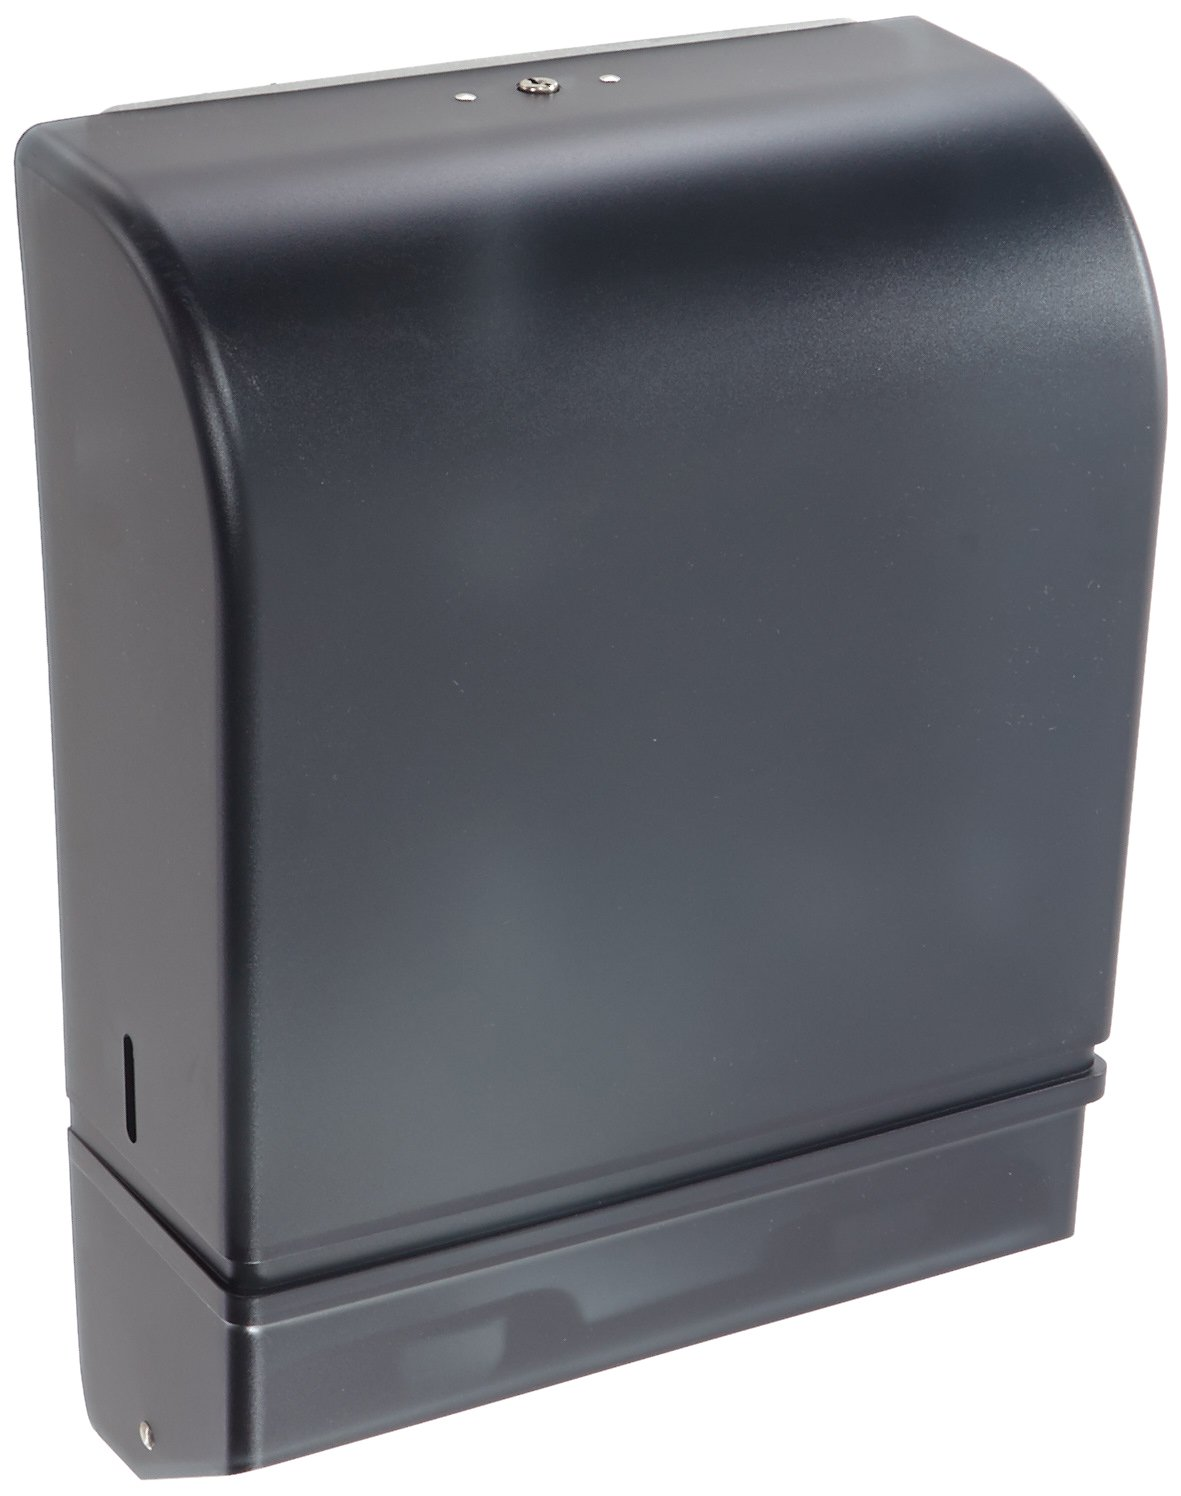 Impact 4089 ClearVu Combo Towel Dispenser, 15-3/4'' Length x 10-1/2'' Width x 8-3/4'' Height, Smoke (Case of 6) by Impact Products